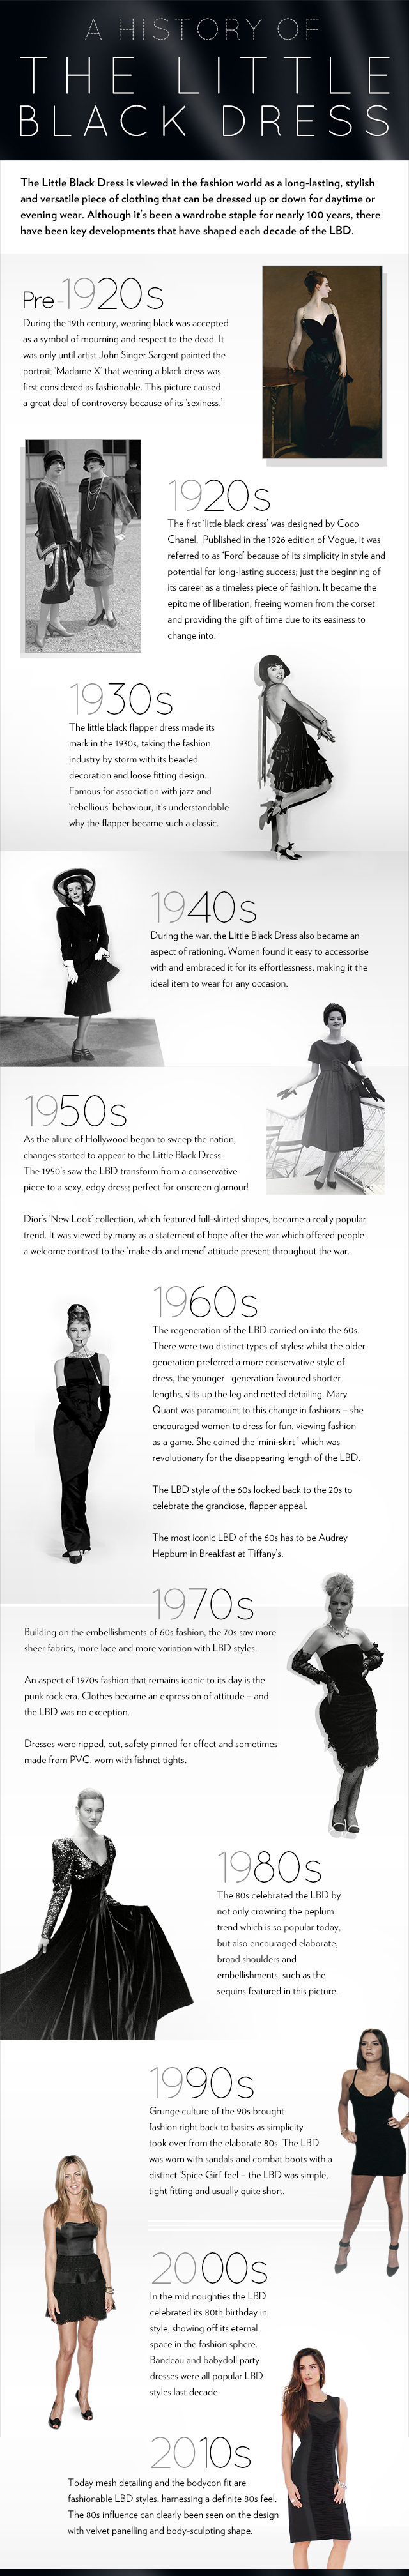 The History Of The Little Black Dress